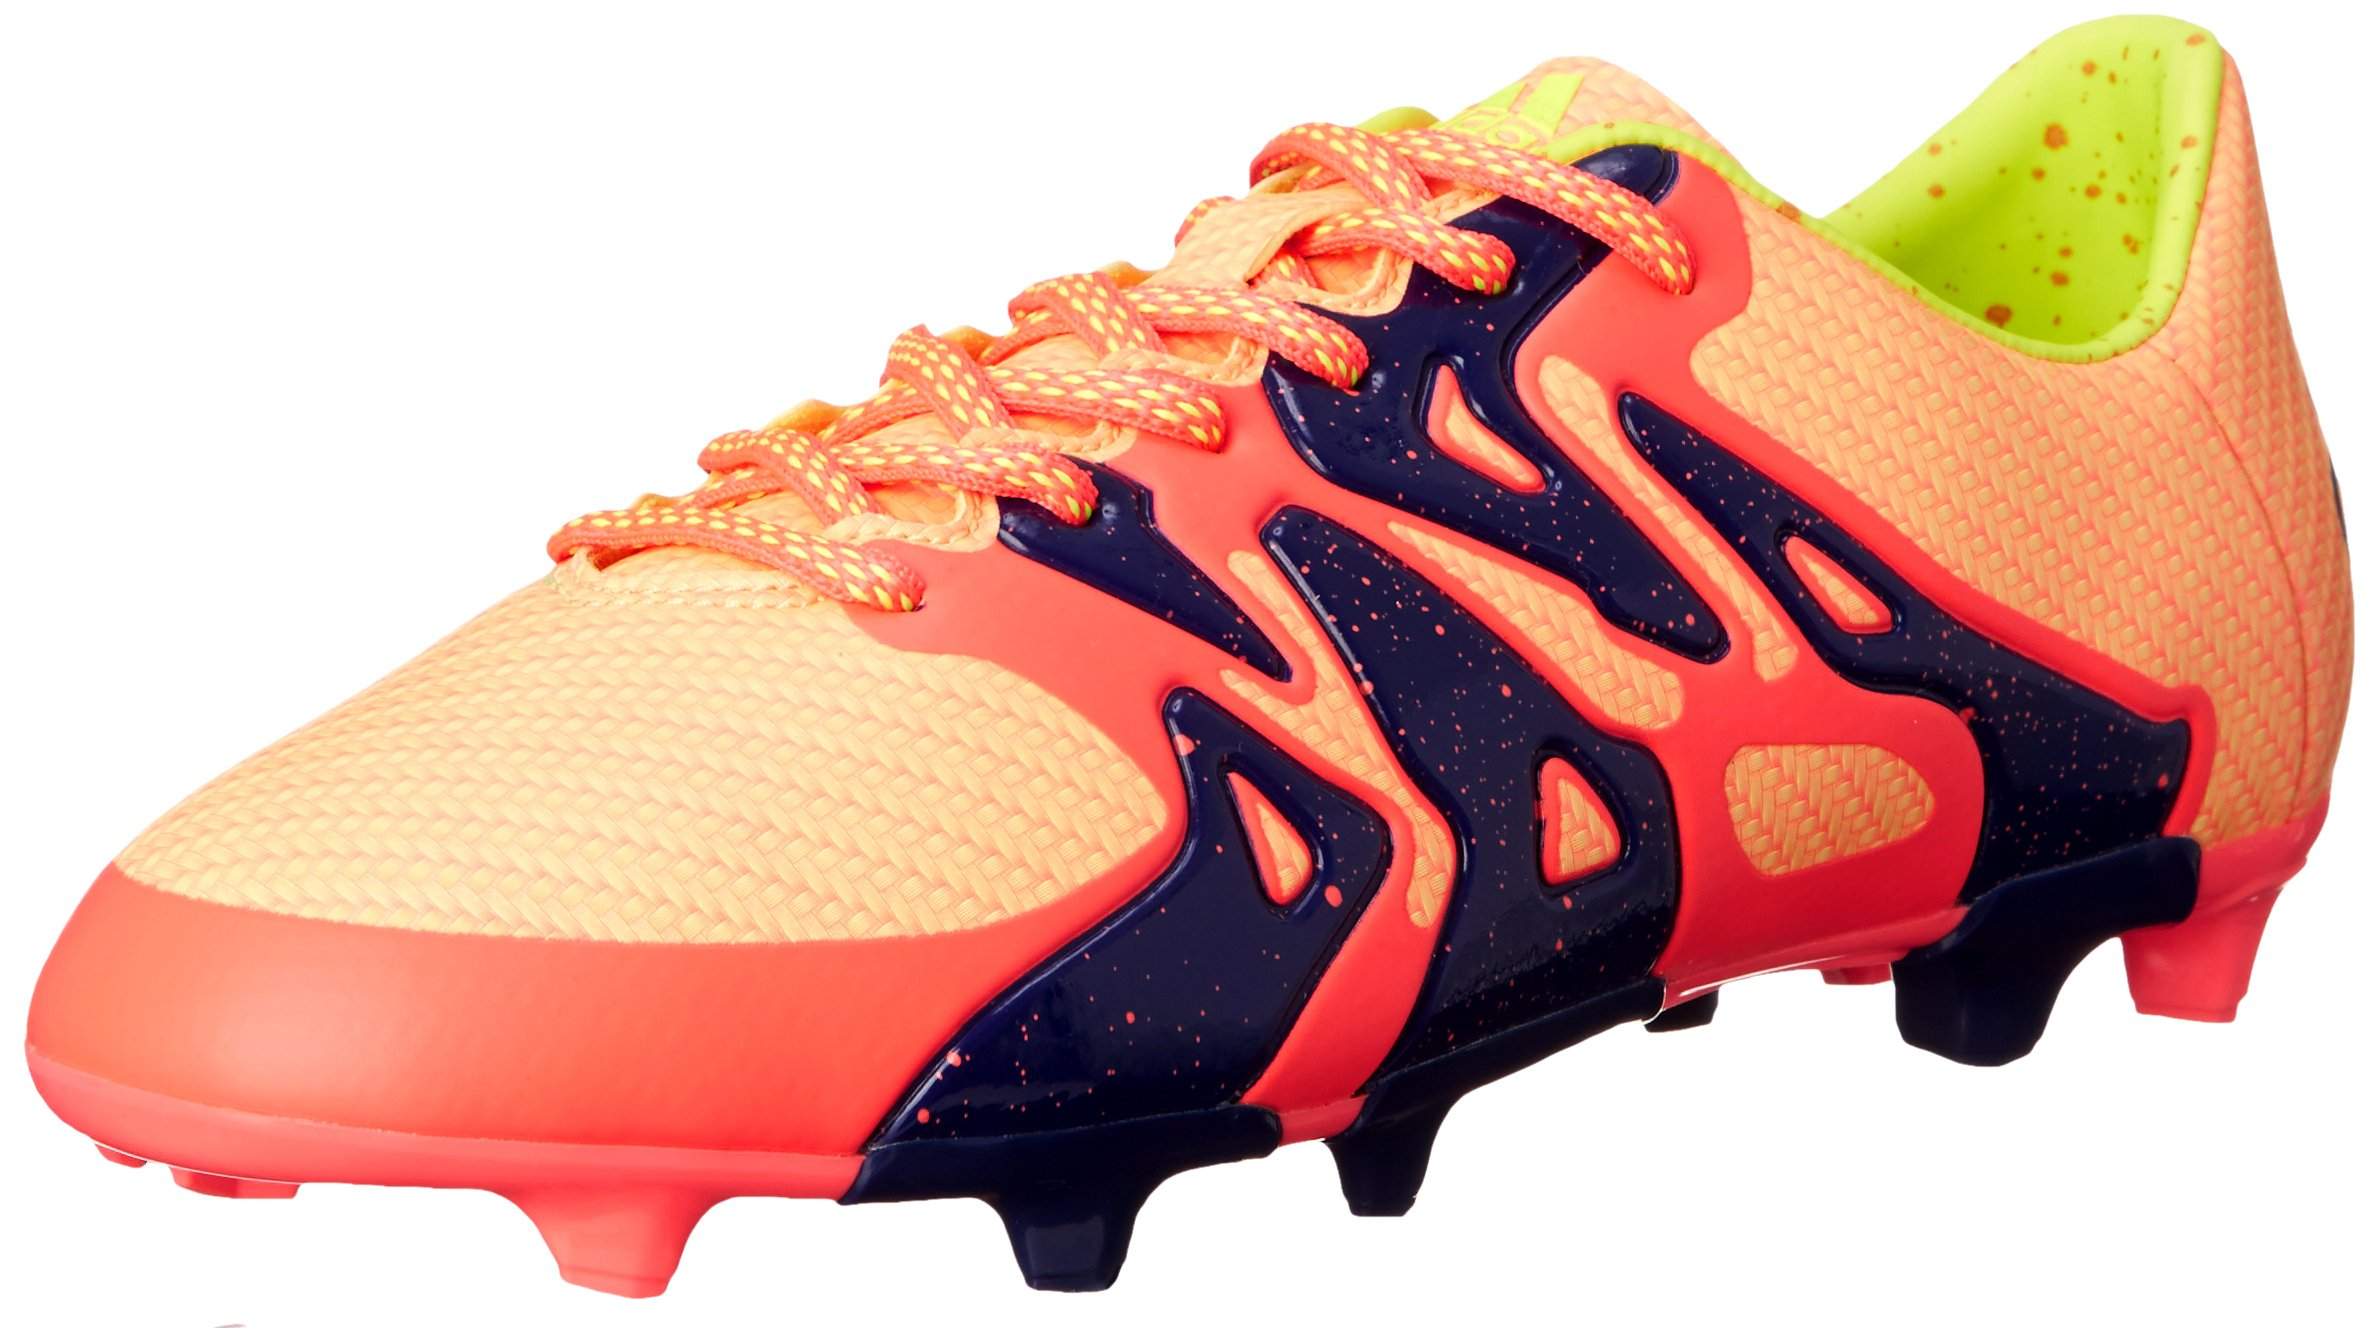 adidas Performance Women's X 15.3 FG/AG W Soccer Cleat,Pink/Yellow/Midnight Indigo Blue,5 M US